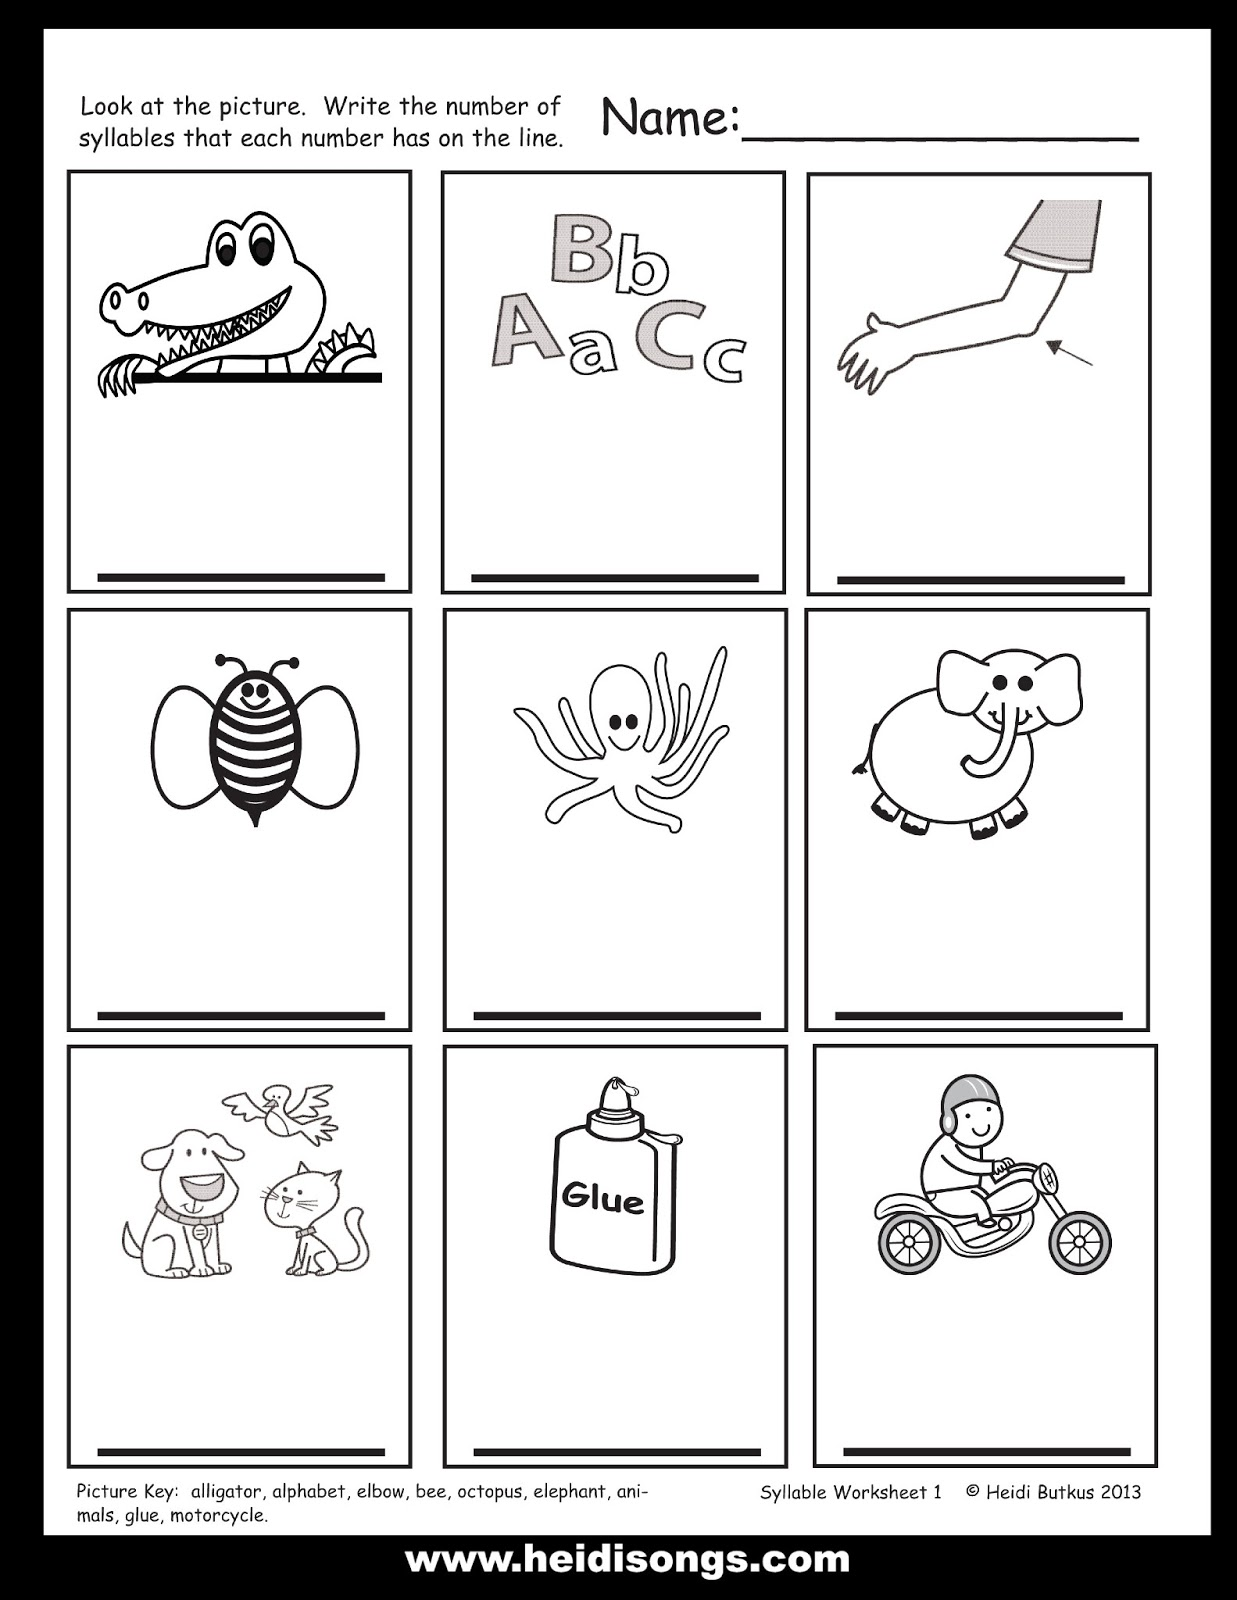 printable syllable worksheets kindergarten syllable worksheets school sparksrhyming have fun. Black Bedroom Furniture Sets. Home Design Ideas